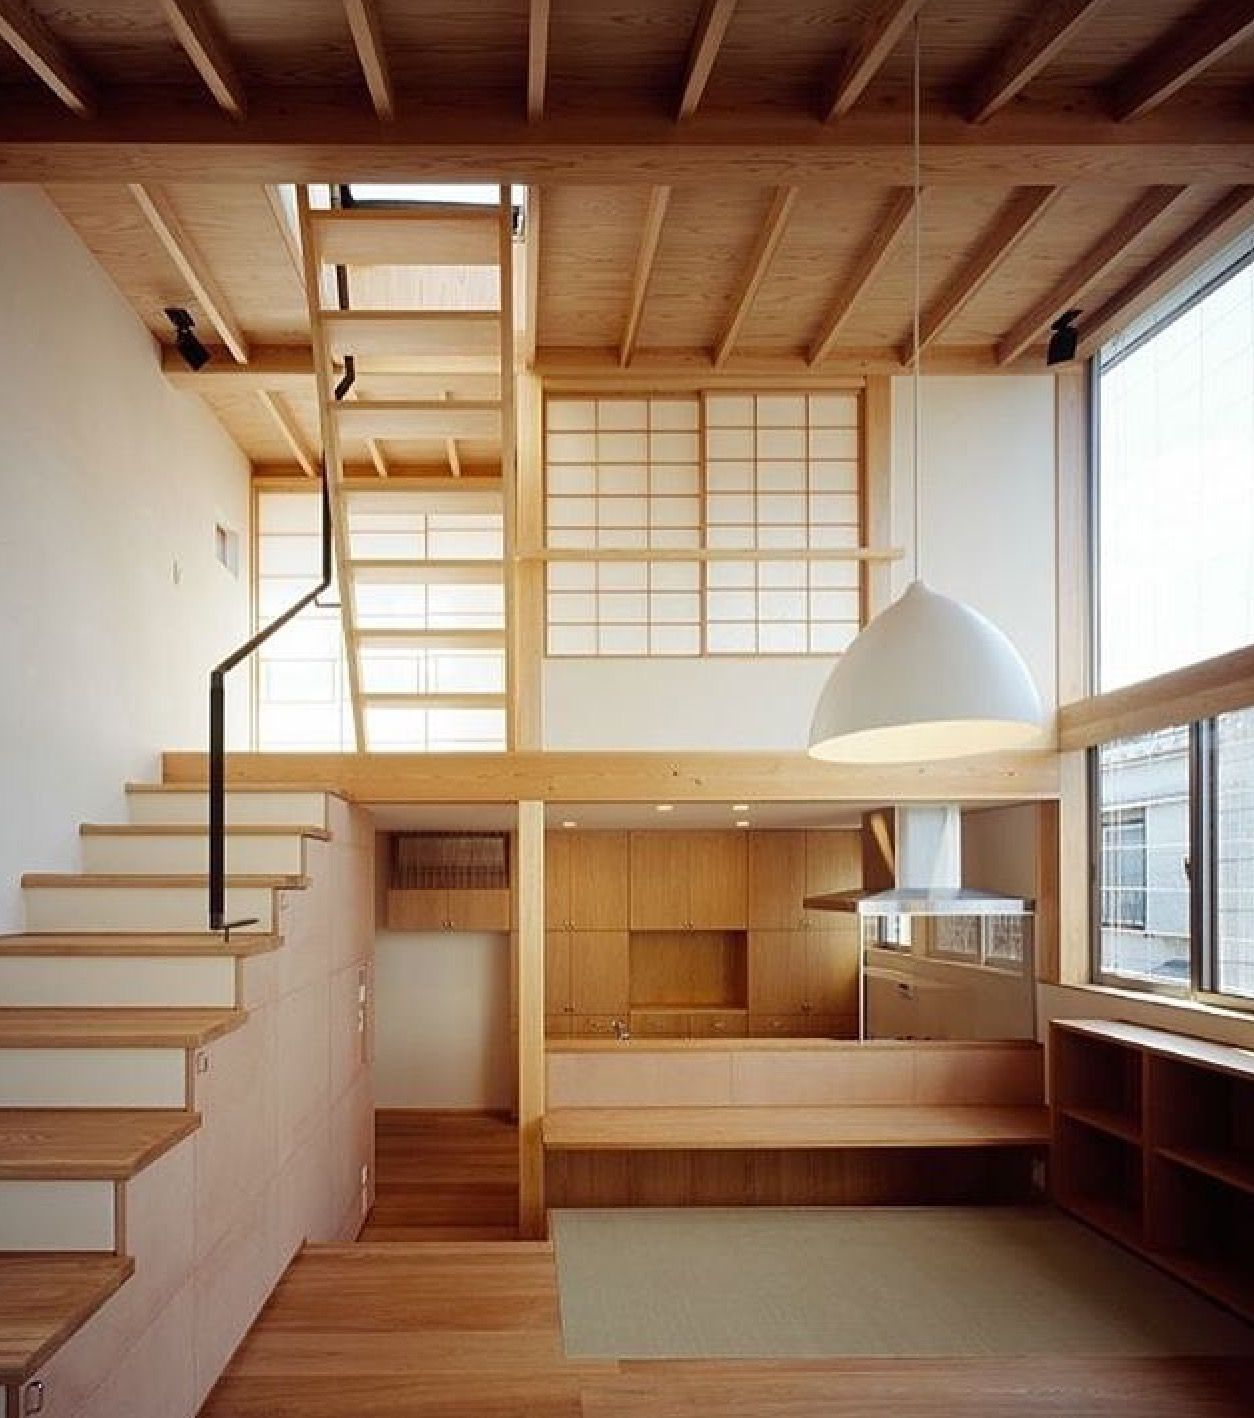 Modern Japanese Kitchens With Images Japanese Home Design Modern Japanese Kitchen Japanese Interior Design